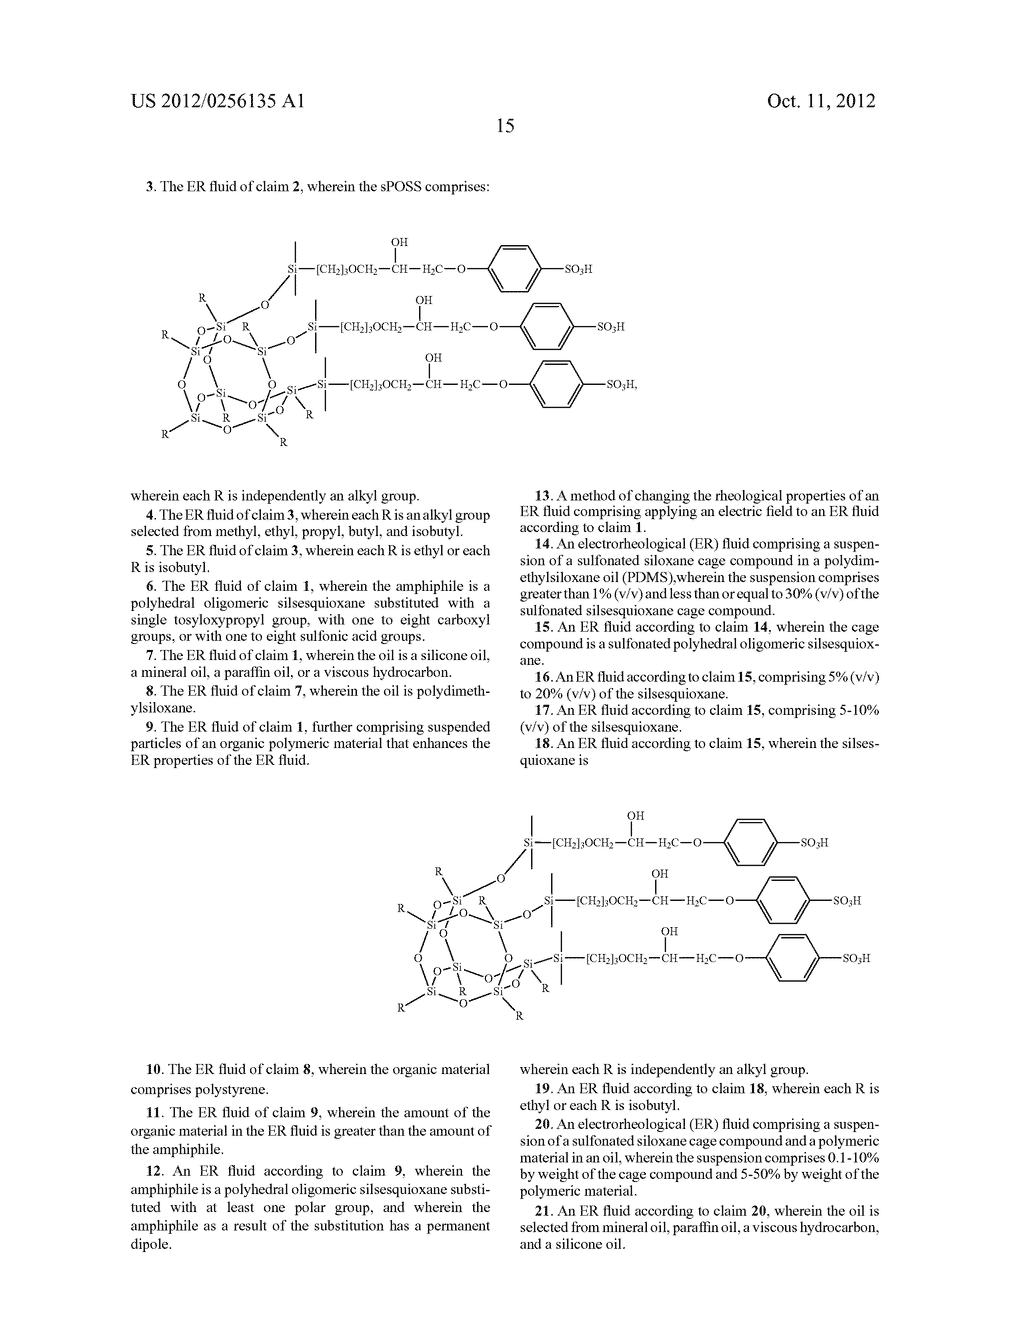 ELECTRORHEOLOGICAL FLUIDS AND METHODS - diagram, schematic, and image 39